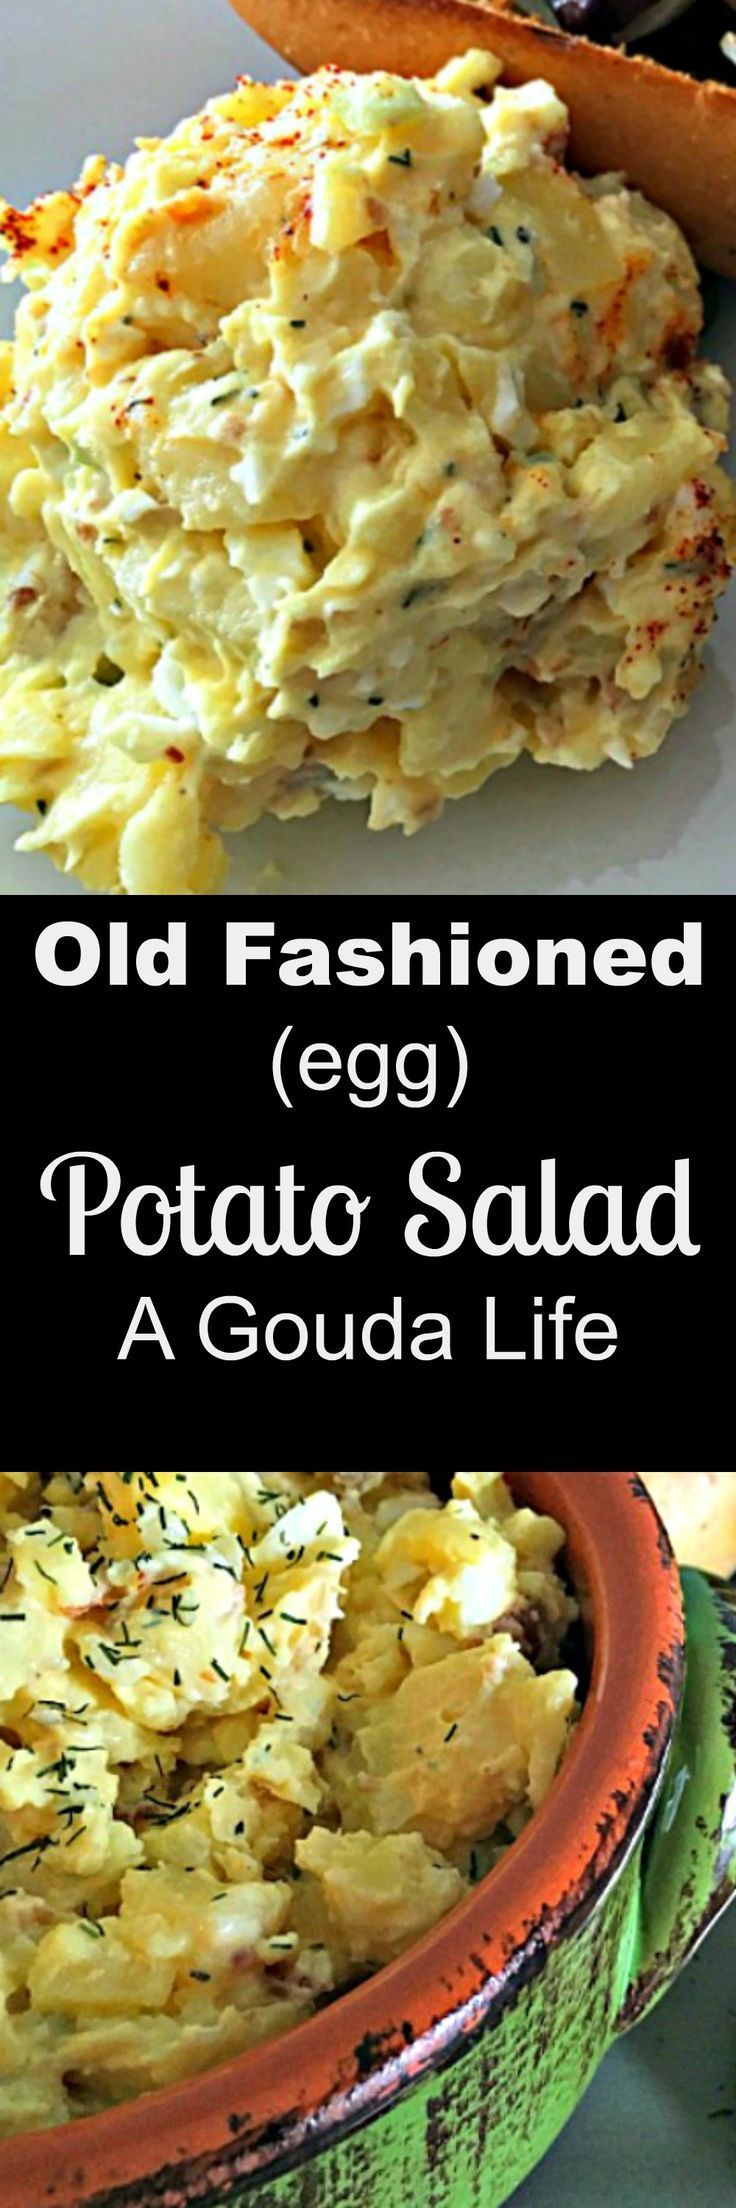 Old fashioned picnic potato salad ~ potatoes, hard-boiled eggs, real @Hellmann's mayonnaise and just a few other ingredients. This is the potato salad of your childhood. via @agoudalife